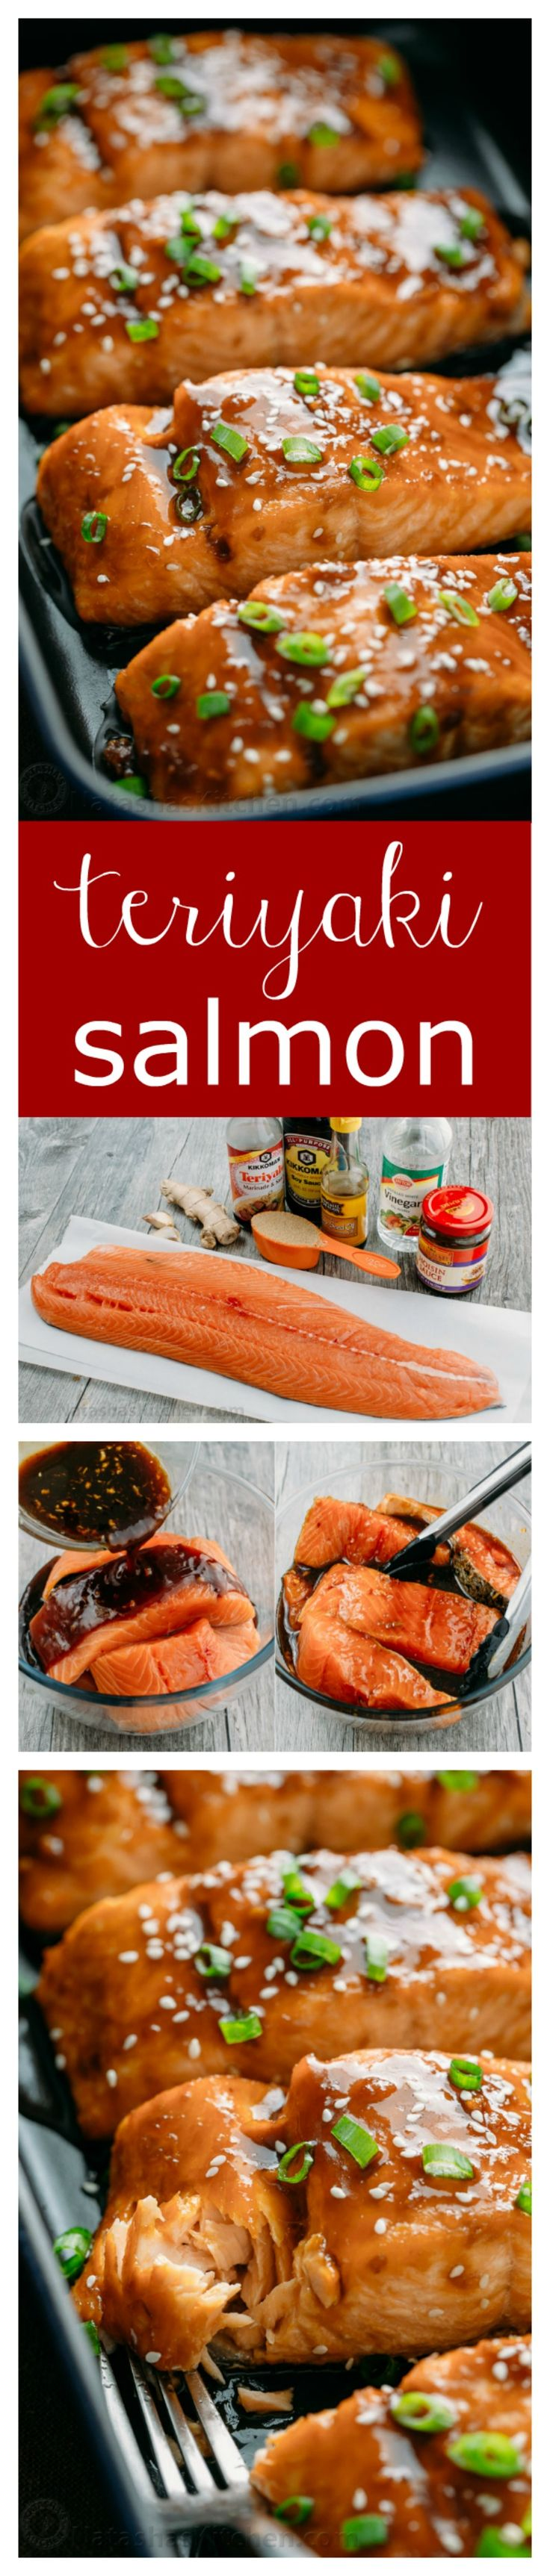 31 best just salmon images on pinterest seafood recipes baked 31 best just salmon images on pinterest seafood recipes baked salmon and fish recipes ccuart Gallery